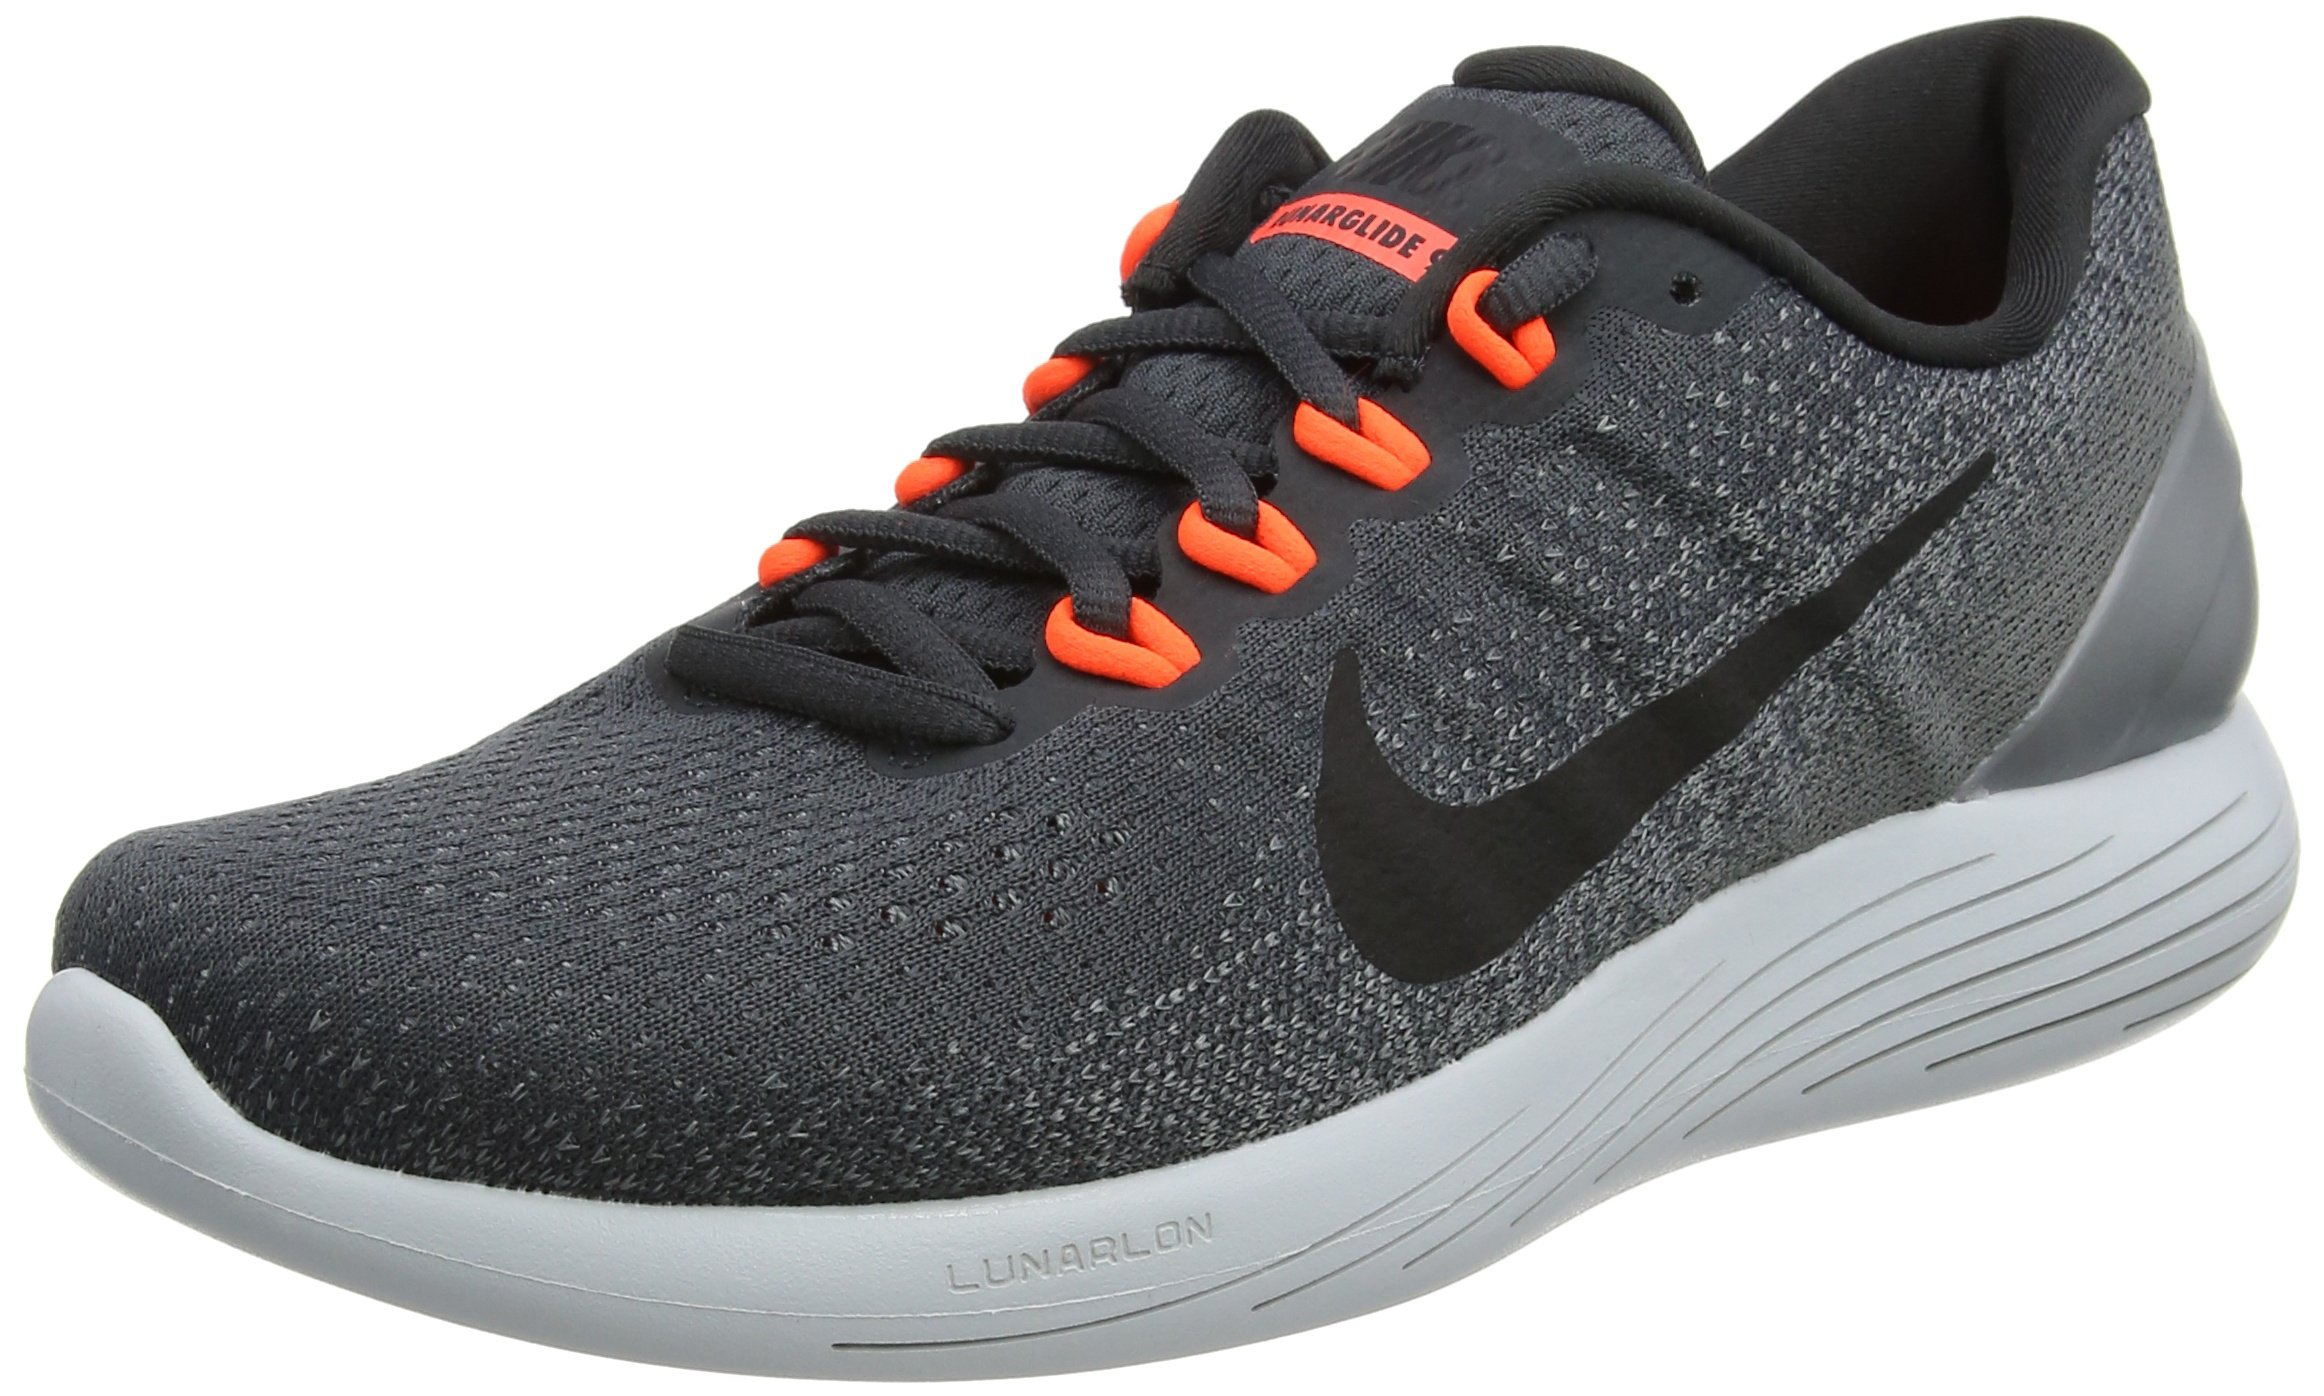 aac11c8c66c Galleon - Nike Lunarglide 9 Anthracite Black Cool Grey Total Crimson Men s Running  Shoes Size 9